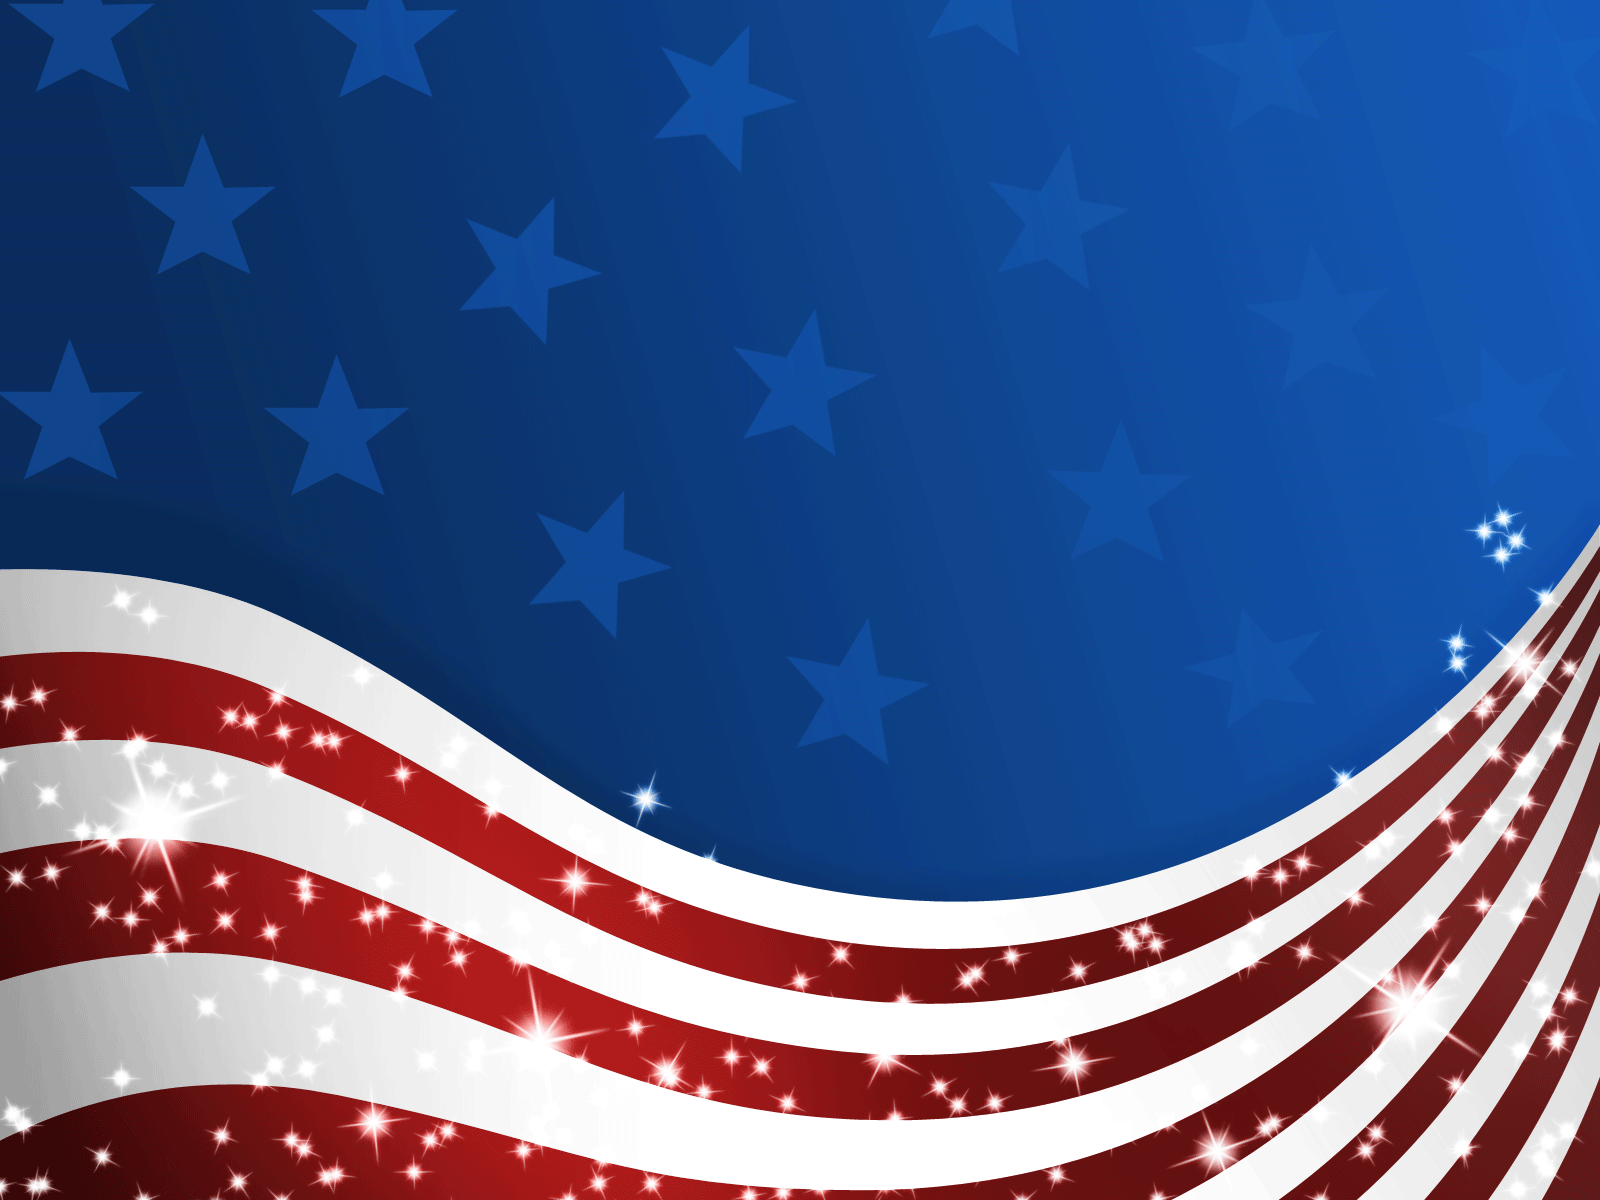 American Patriotic Flag Backgroundspng The West Virginia State Bar 1600x1200